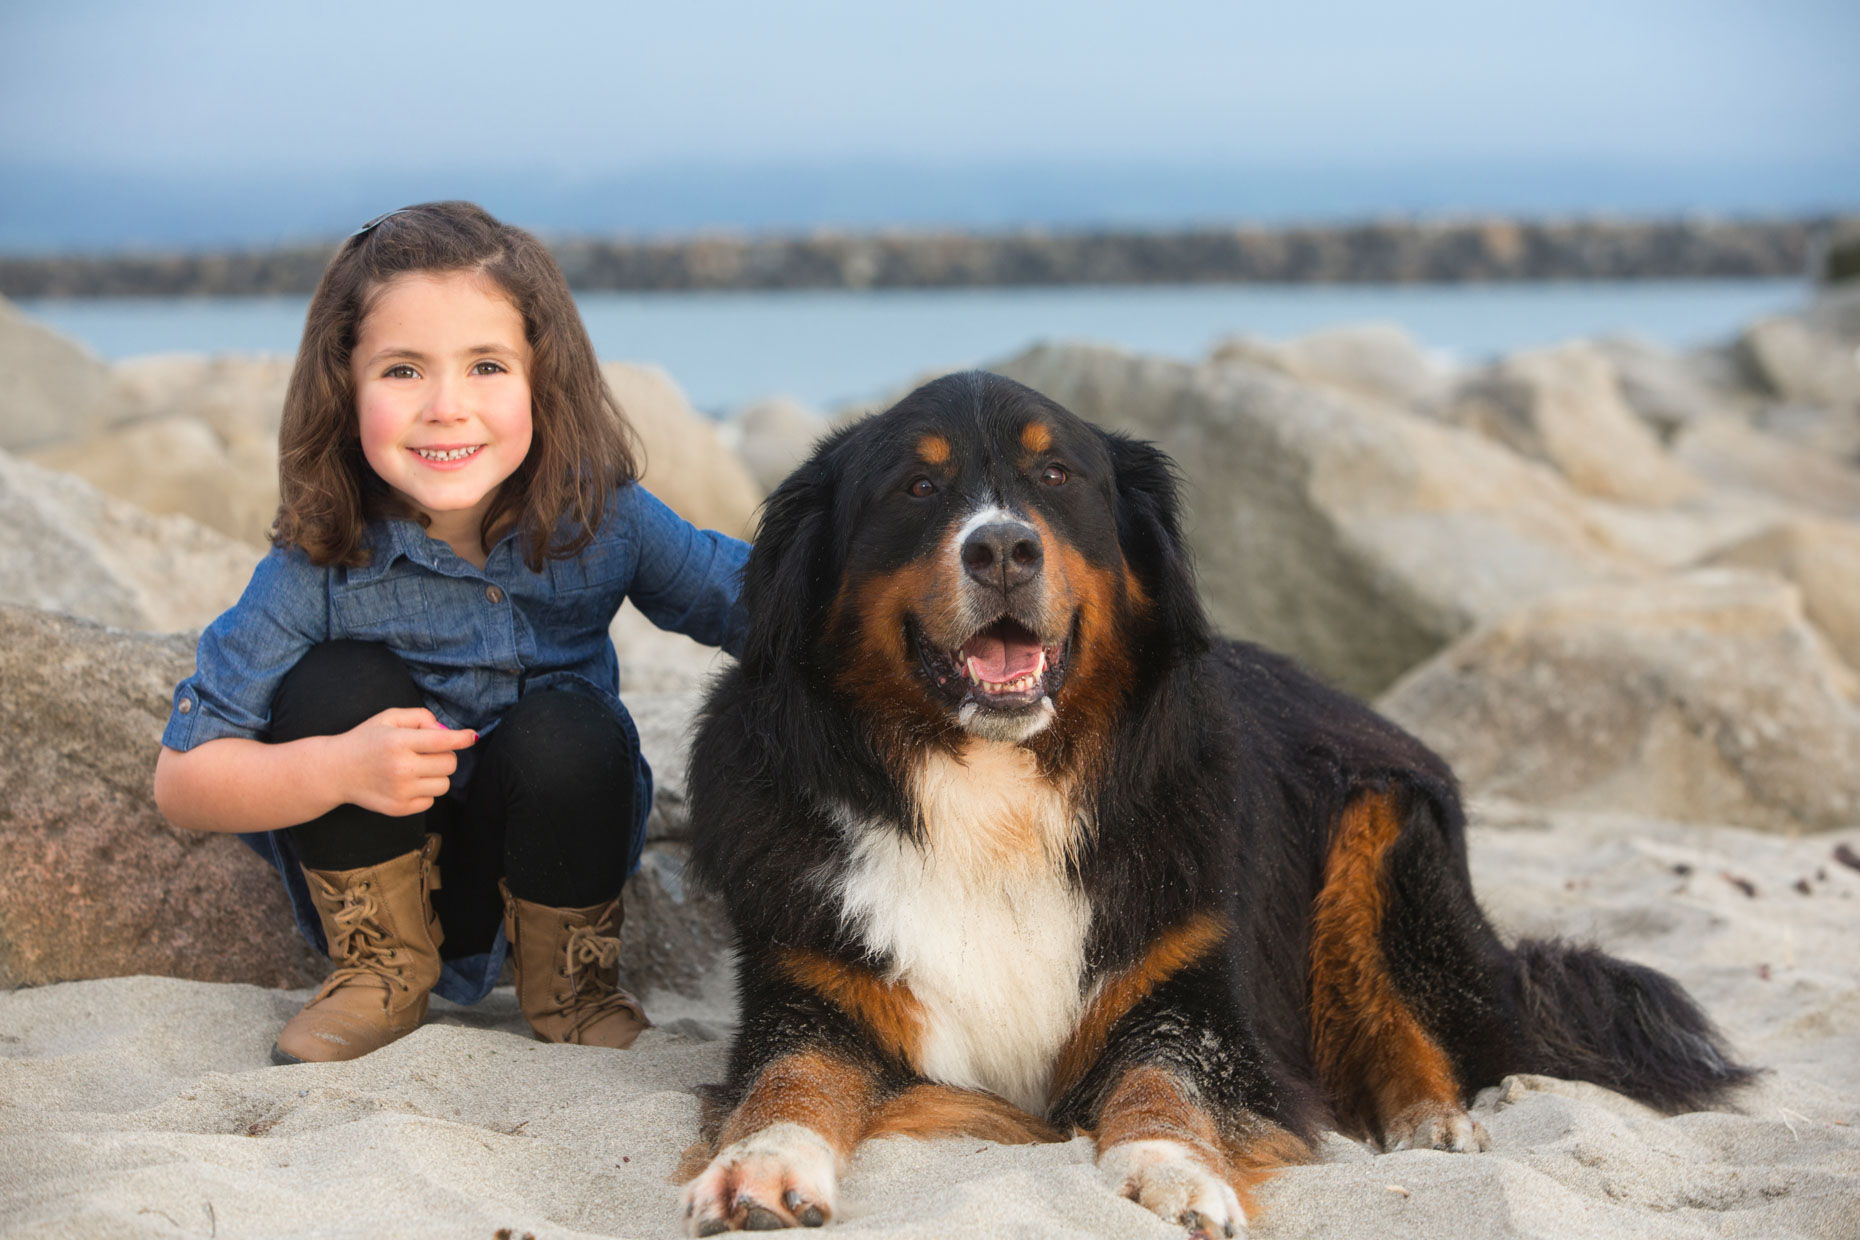 Dog and Pet Photography | Girl with Dog on Beach by Mark Rogers